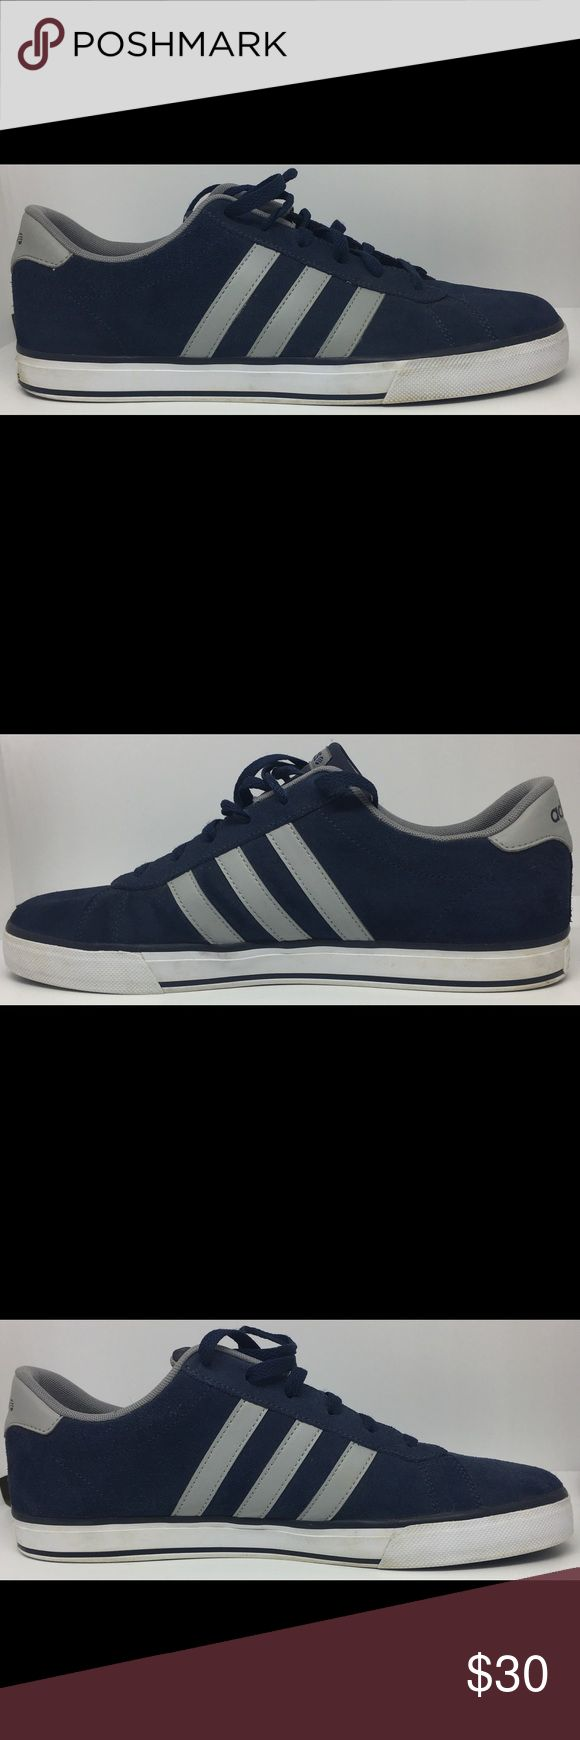 Adidas Neo, SE Daily Vulc Sneakers Navy, Gray Worn a few times. Has wear that can be cleaned up Good Condition. See Pictures. Bin B22 adidas Shoes Sneakers